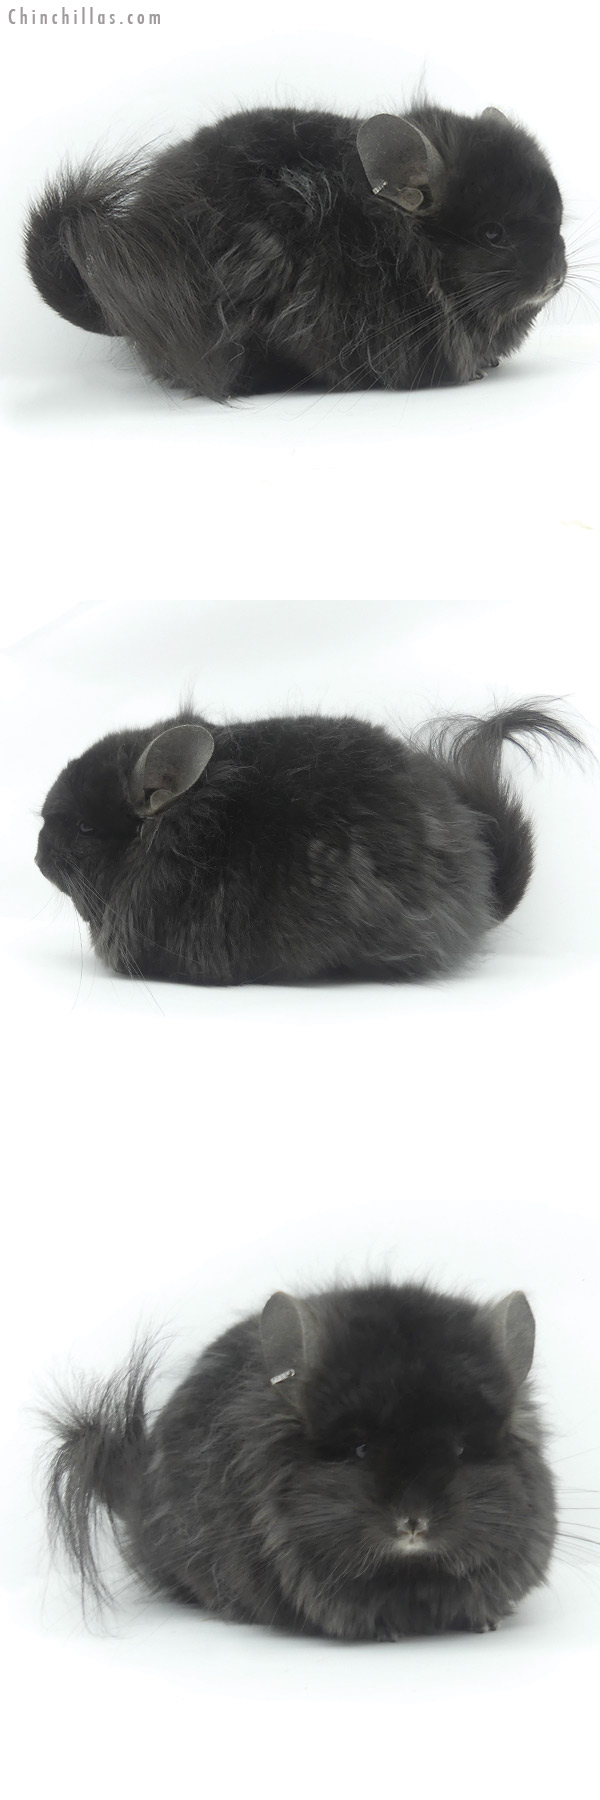 20088 Exceptional Ebony ( Locken Carrier ) G2 CCCU Royal Persian Angora Male Chinchilla